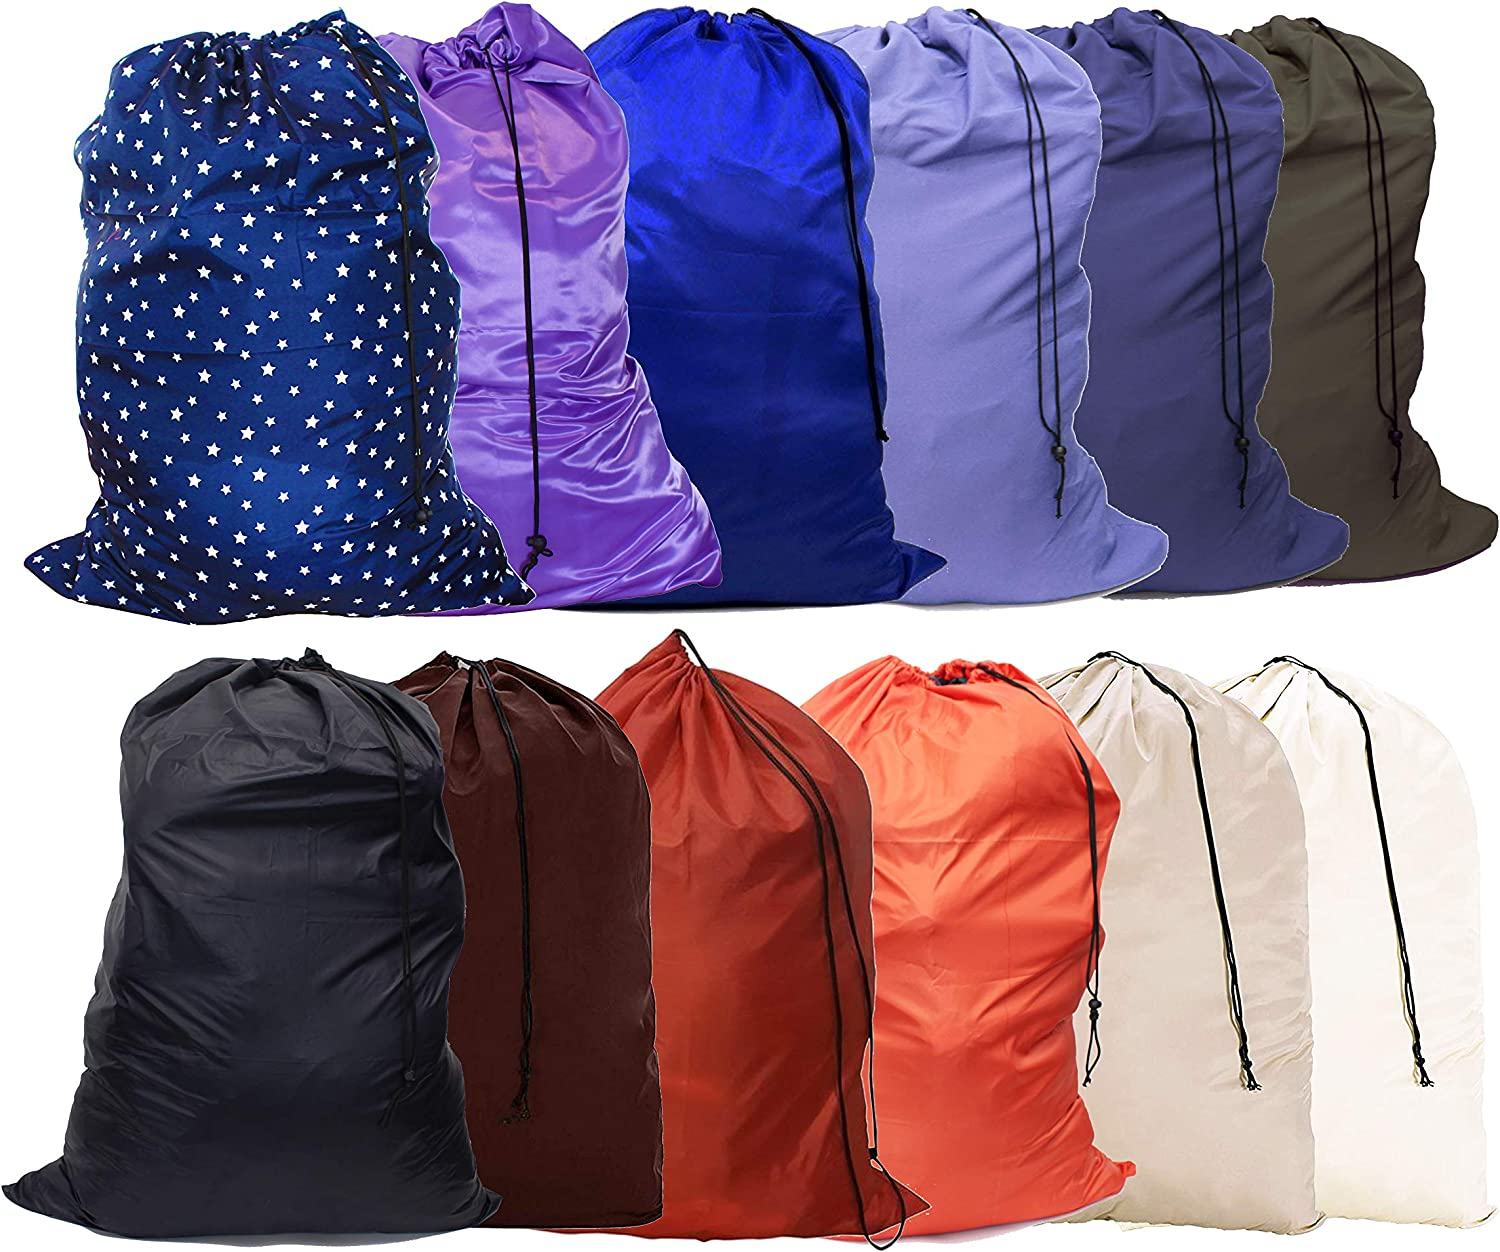 "YETHAN Extra Large Laundry Bag 12 Pack, Travel Laundry Bags with Drawstring Closure, 30""x40"", for College, Dorm and Apartment dwellers."